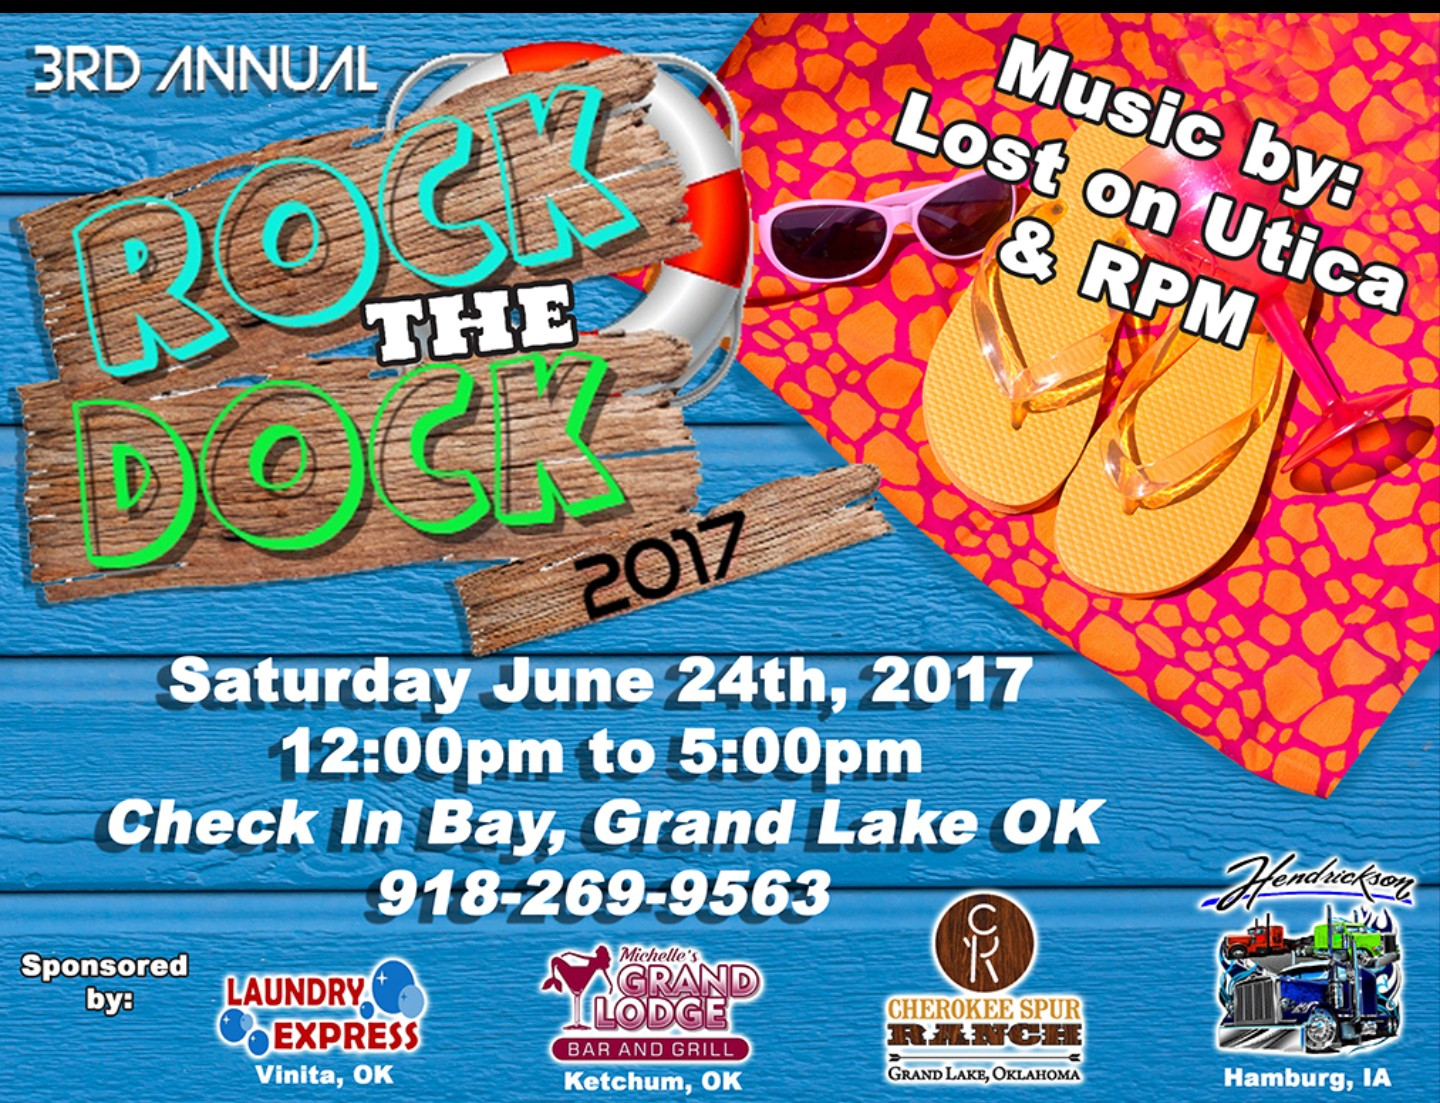 2017 Rock The Dock party at Grand Lake OK